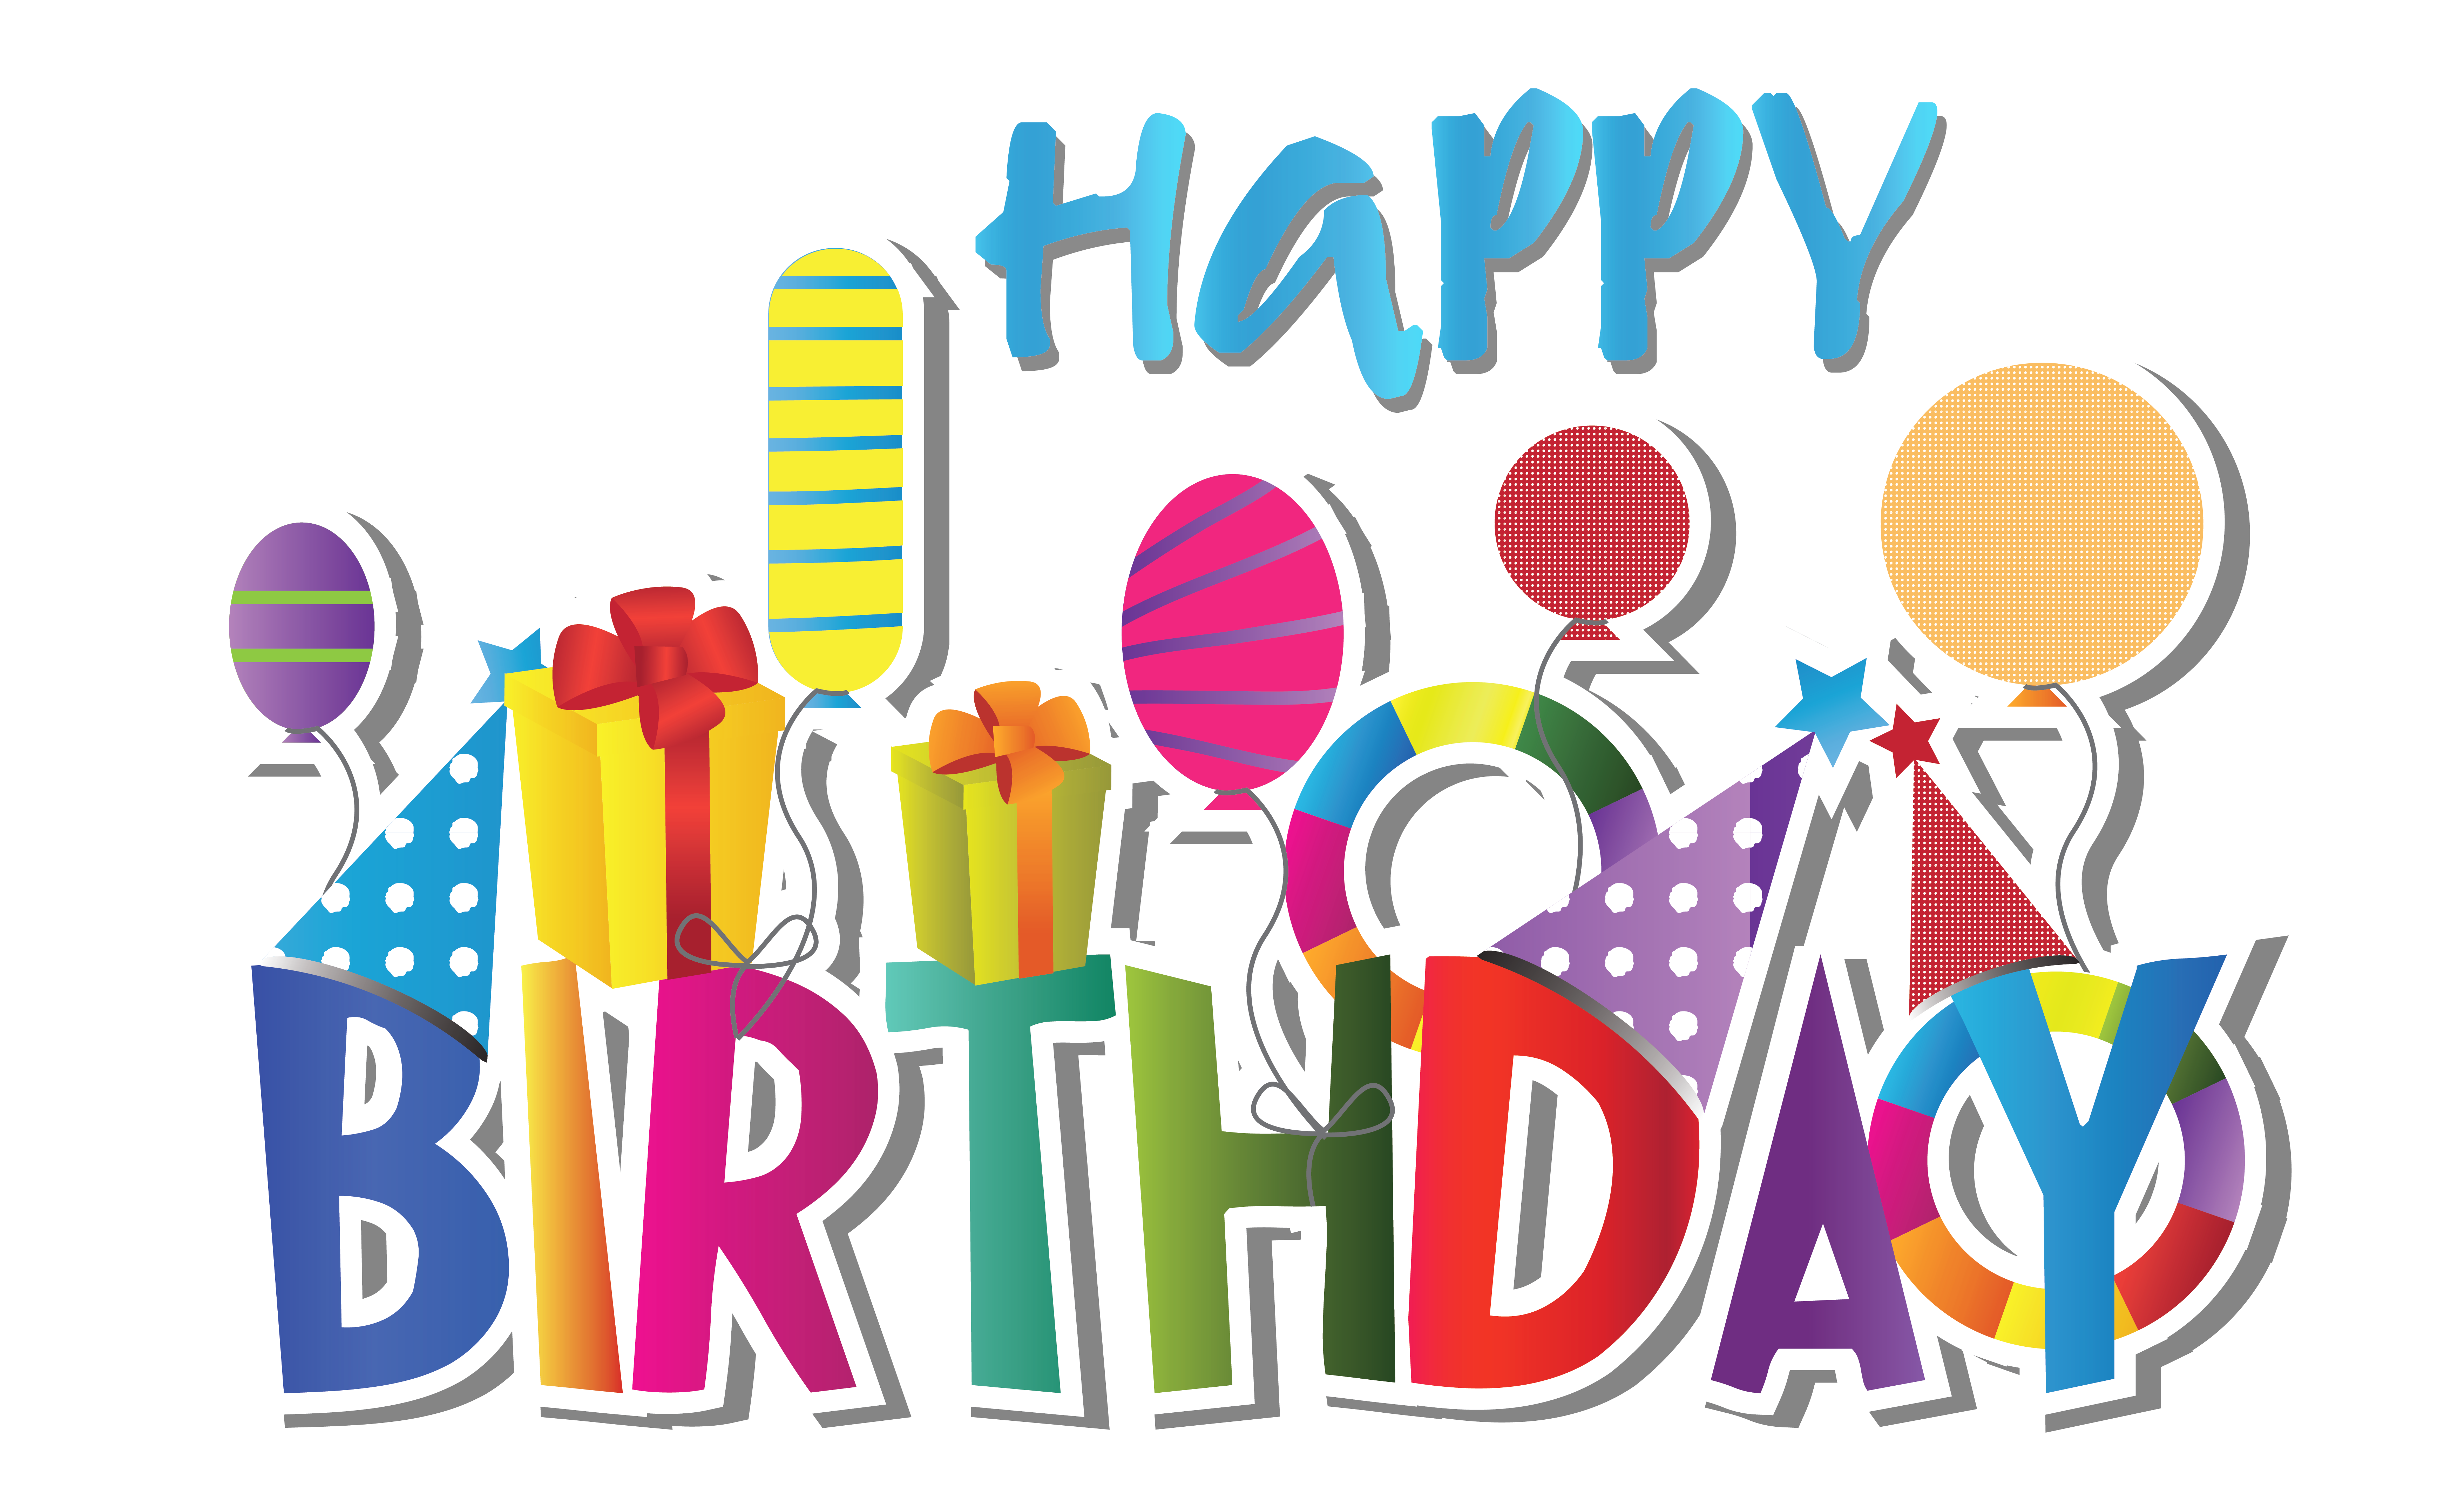 happy birthday png birthday png animated transparent birthday animated #9248